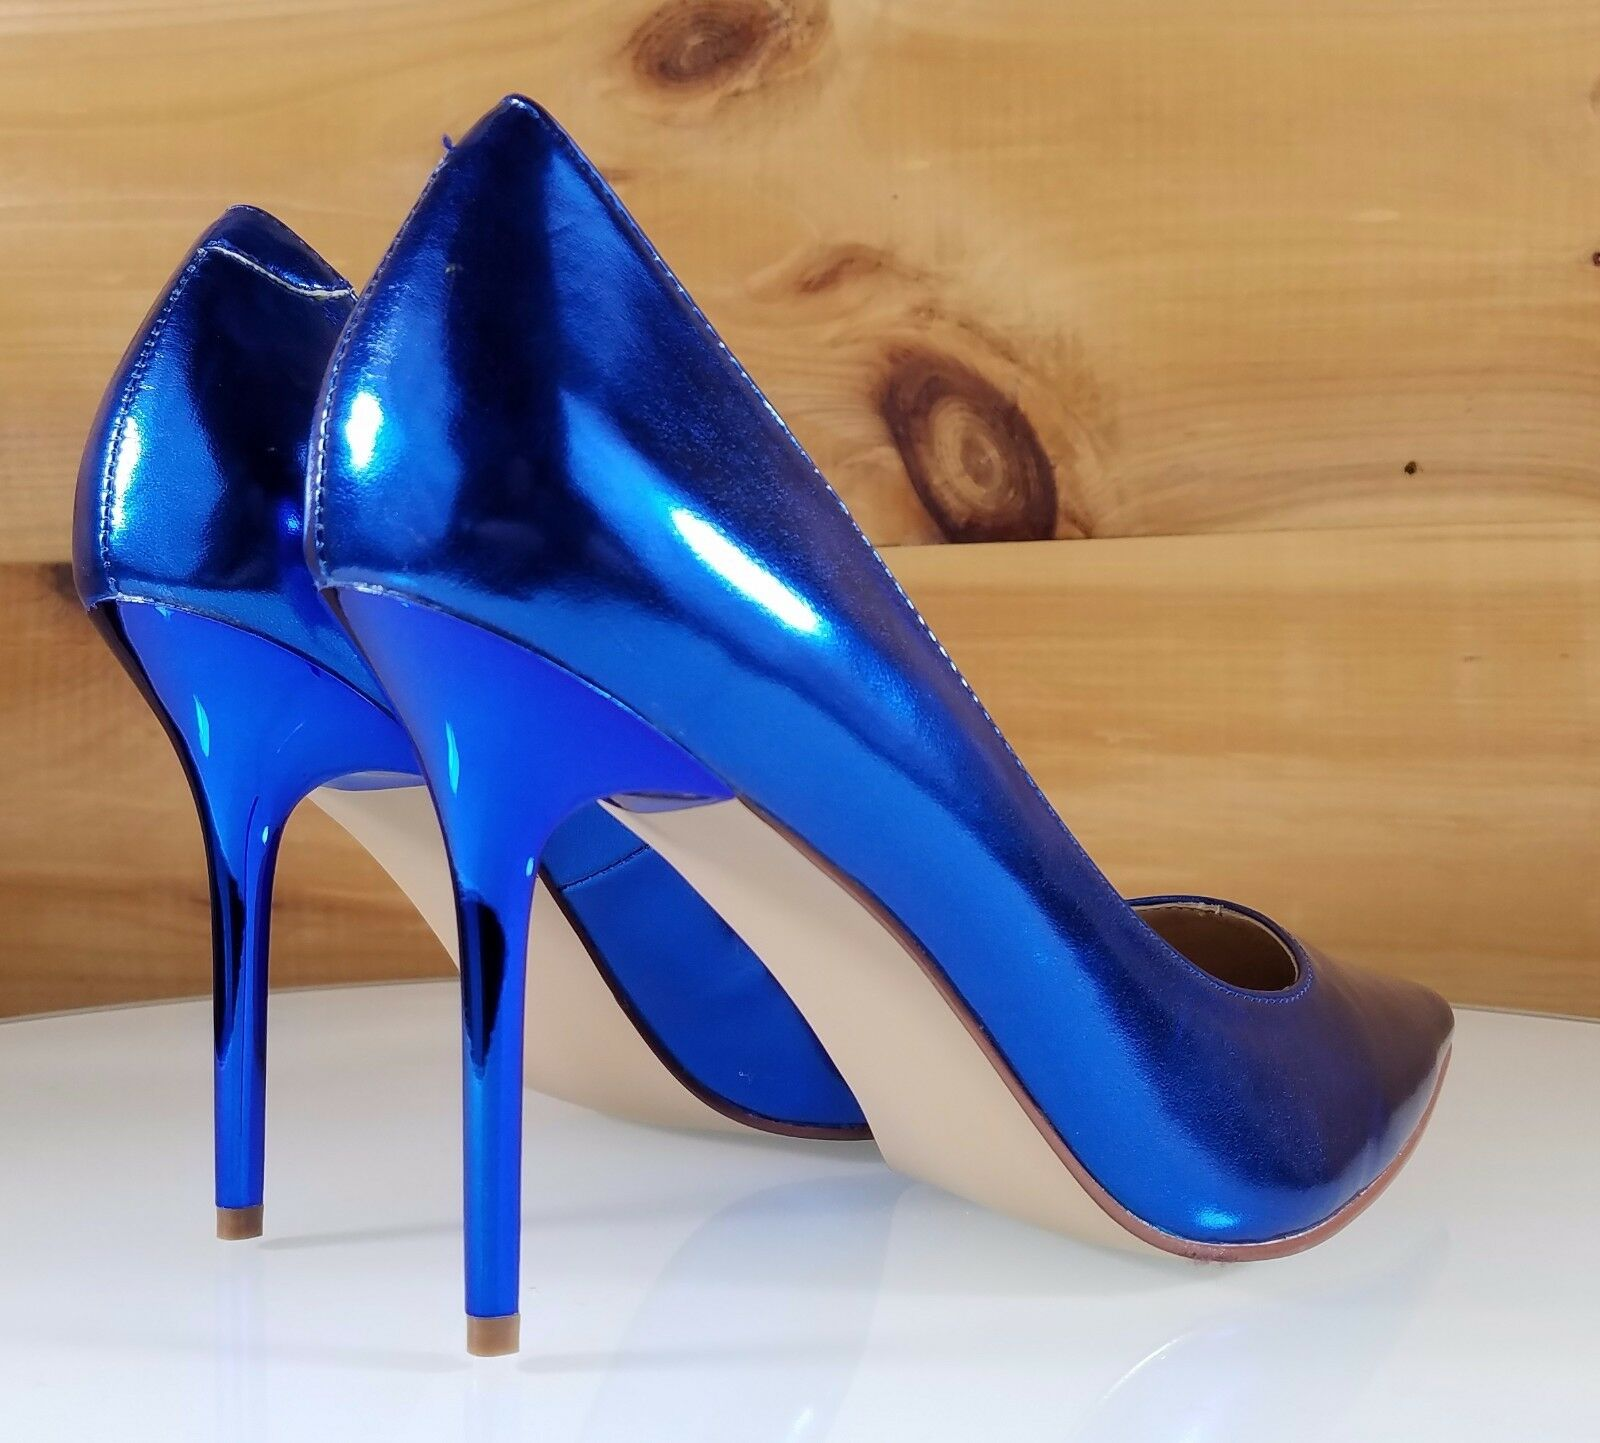 Classique 20 Pointy Toe 4 4 4  High Stiletto Heel Pumps schuhe 6 - 16 Metallic Blau 7c9aa7